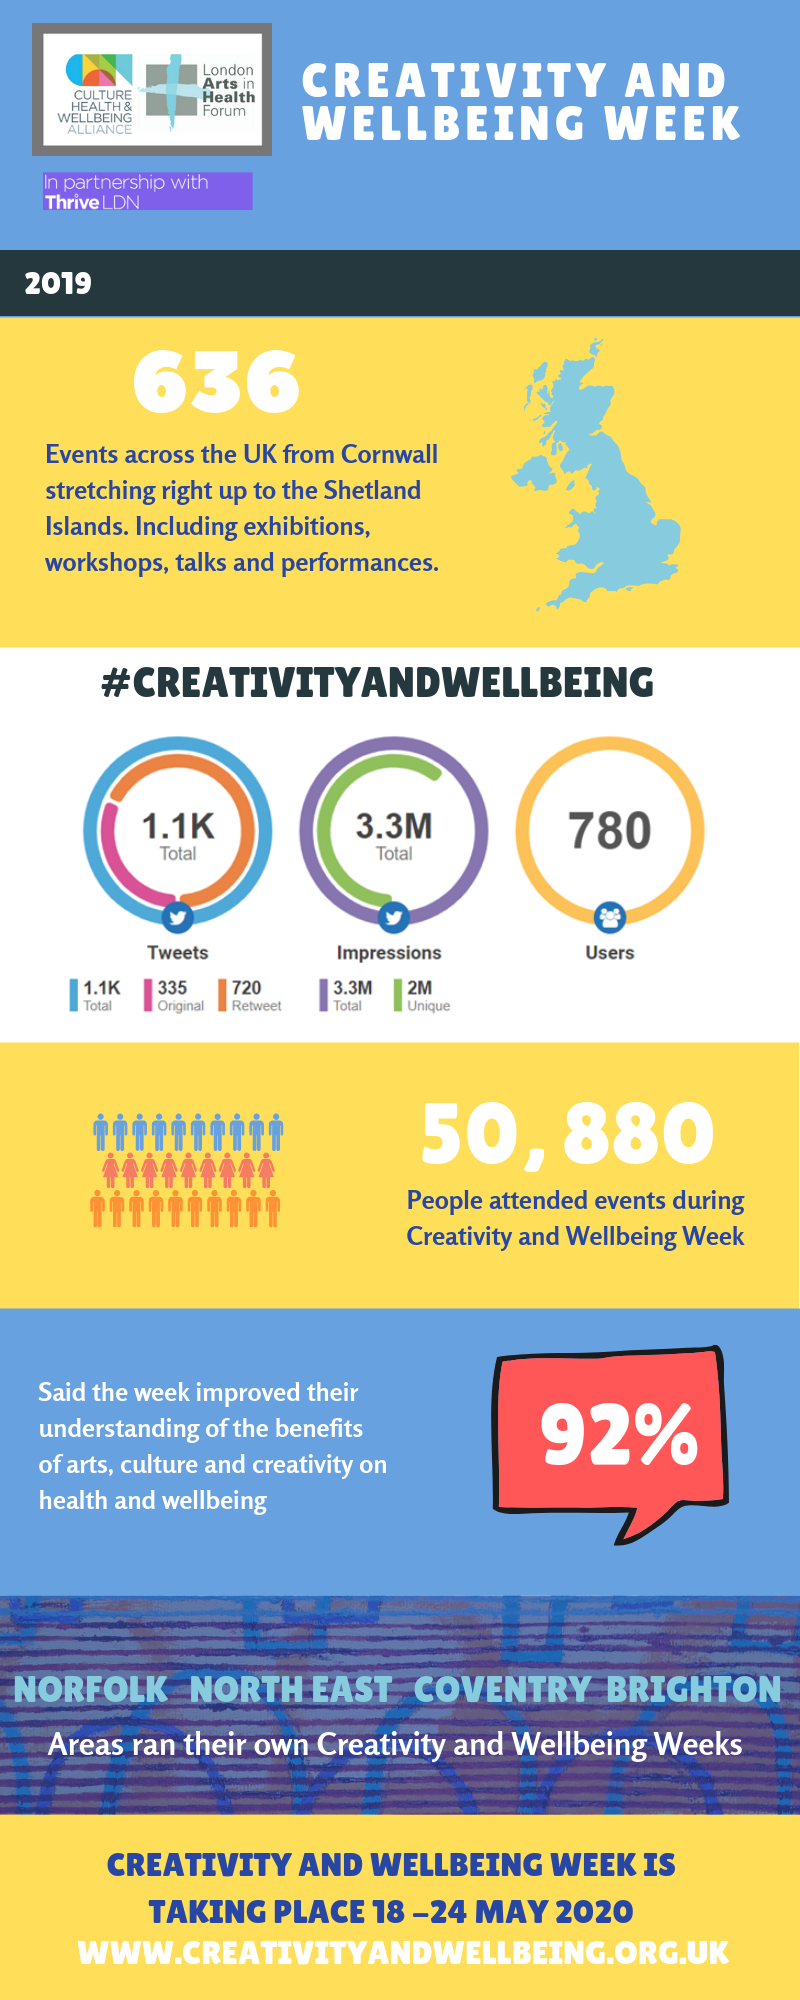 Infographic giving statistics on Creativity & Wellbeing Week 2019: there were 636 events and 50,880 people attended